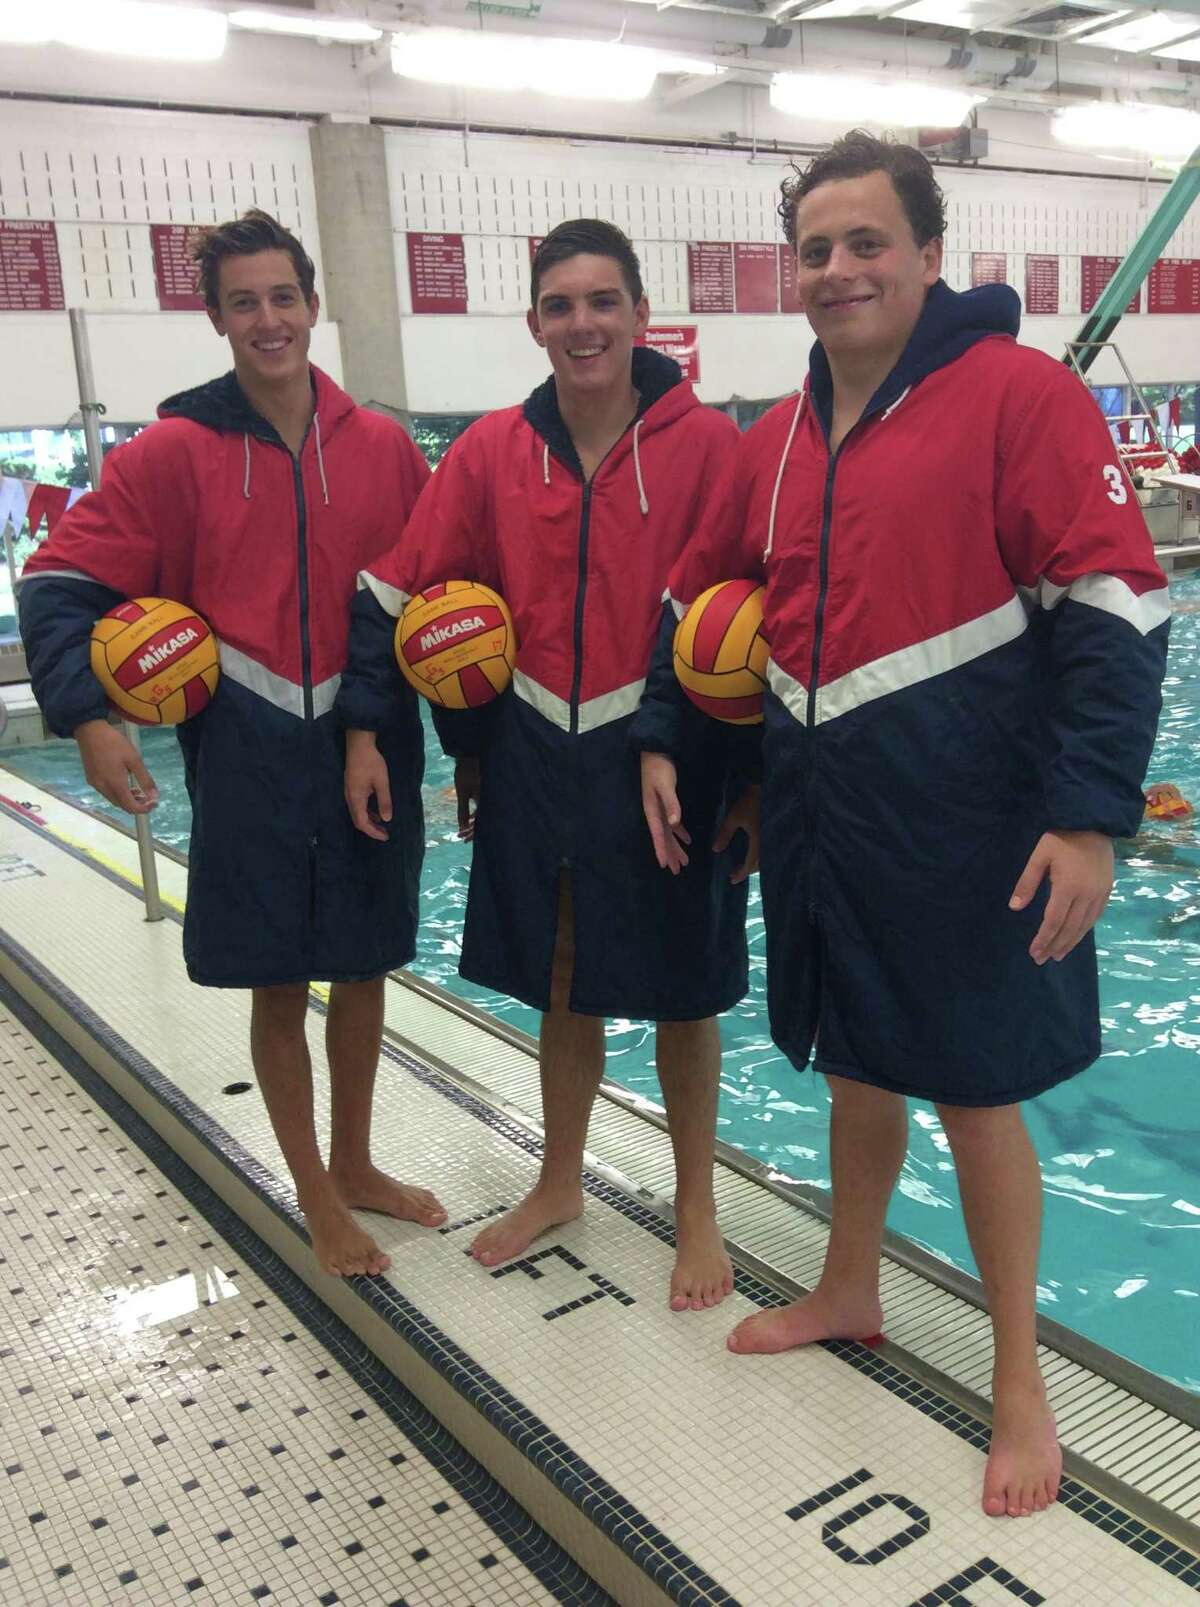 From left to right, Niki de la Sierra, Kyle Laufenberg and Tegan D'Agostino are senior captains on the Greenwich High School water polo team.